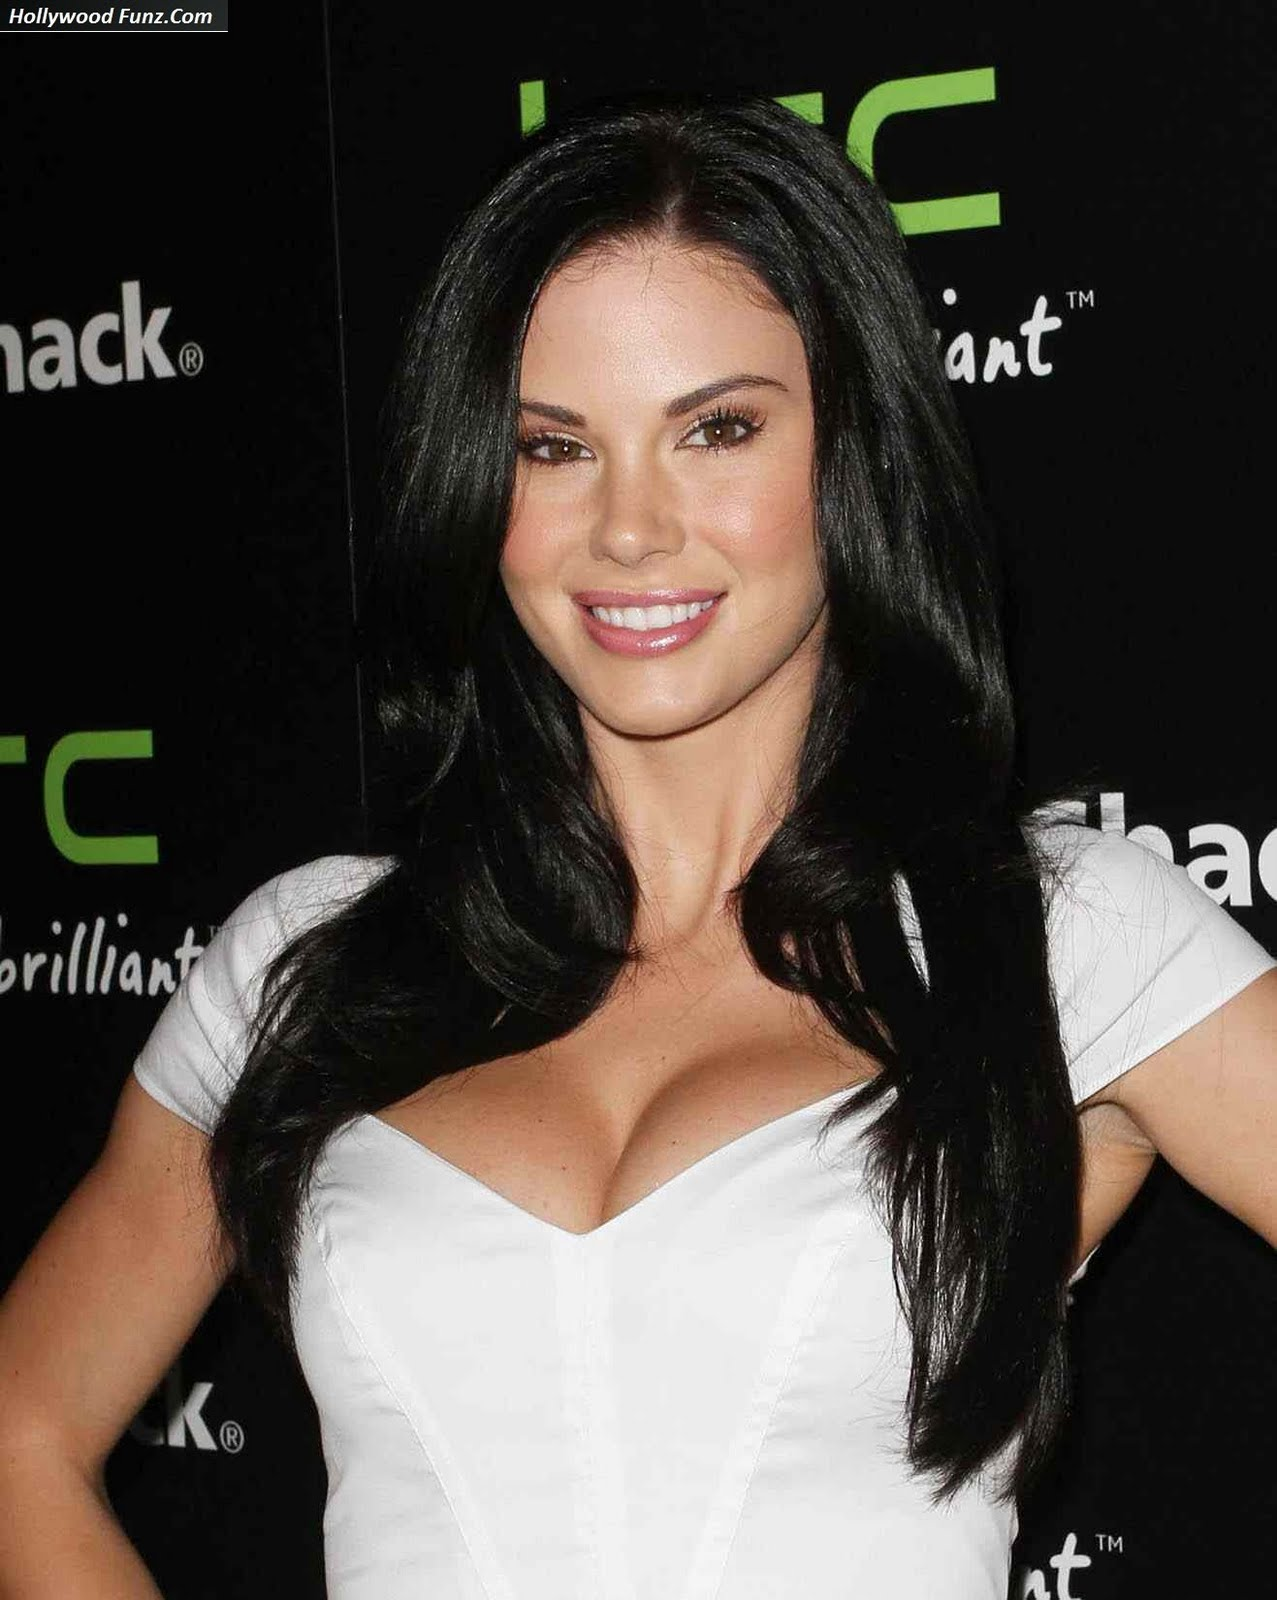 http://2.bp.blogspot.com/-If-8seq5gIo/Th7ojUvAK-I/AAAAAAAABcw/nXzTMCSFCWU/s1600/jayde_nicole_sweet_out_3.jpg